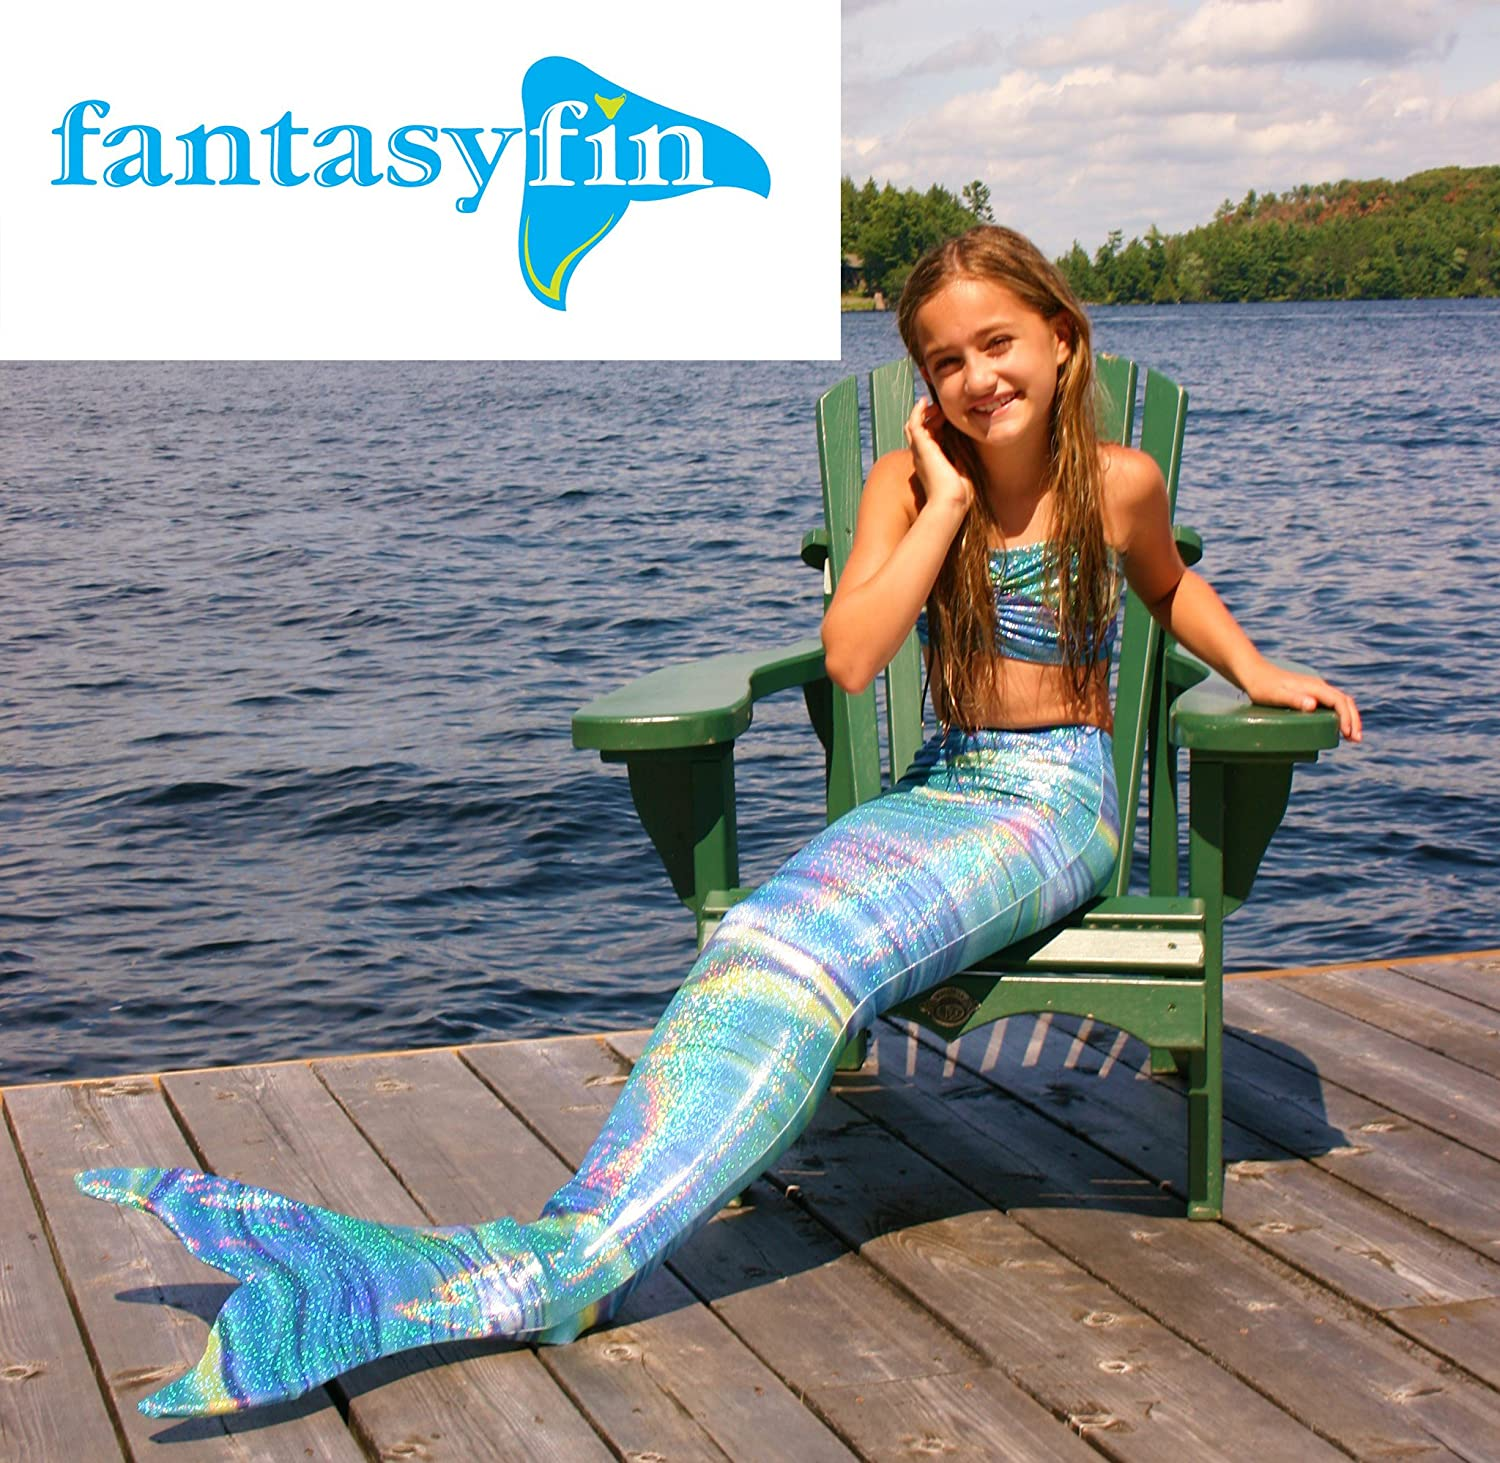 Free fantasy girl teen pictures idea